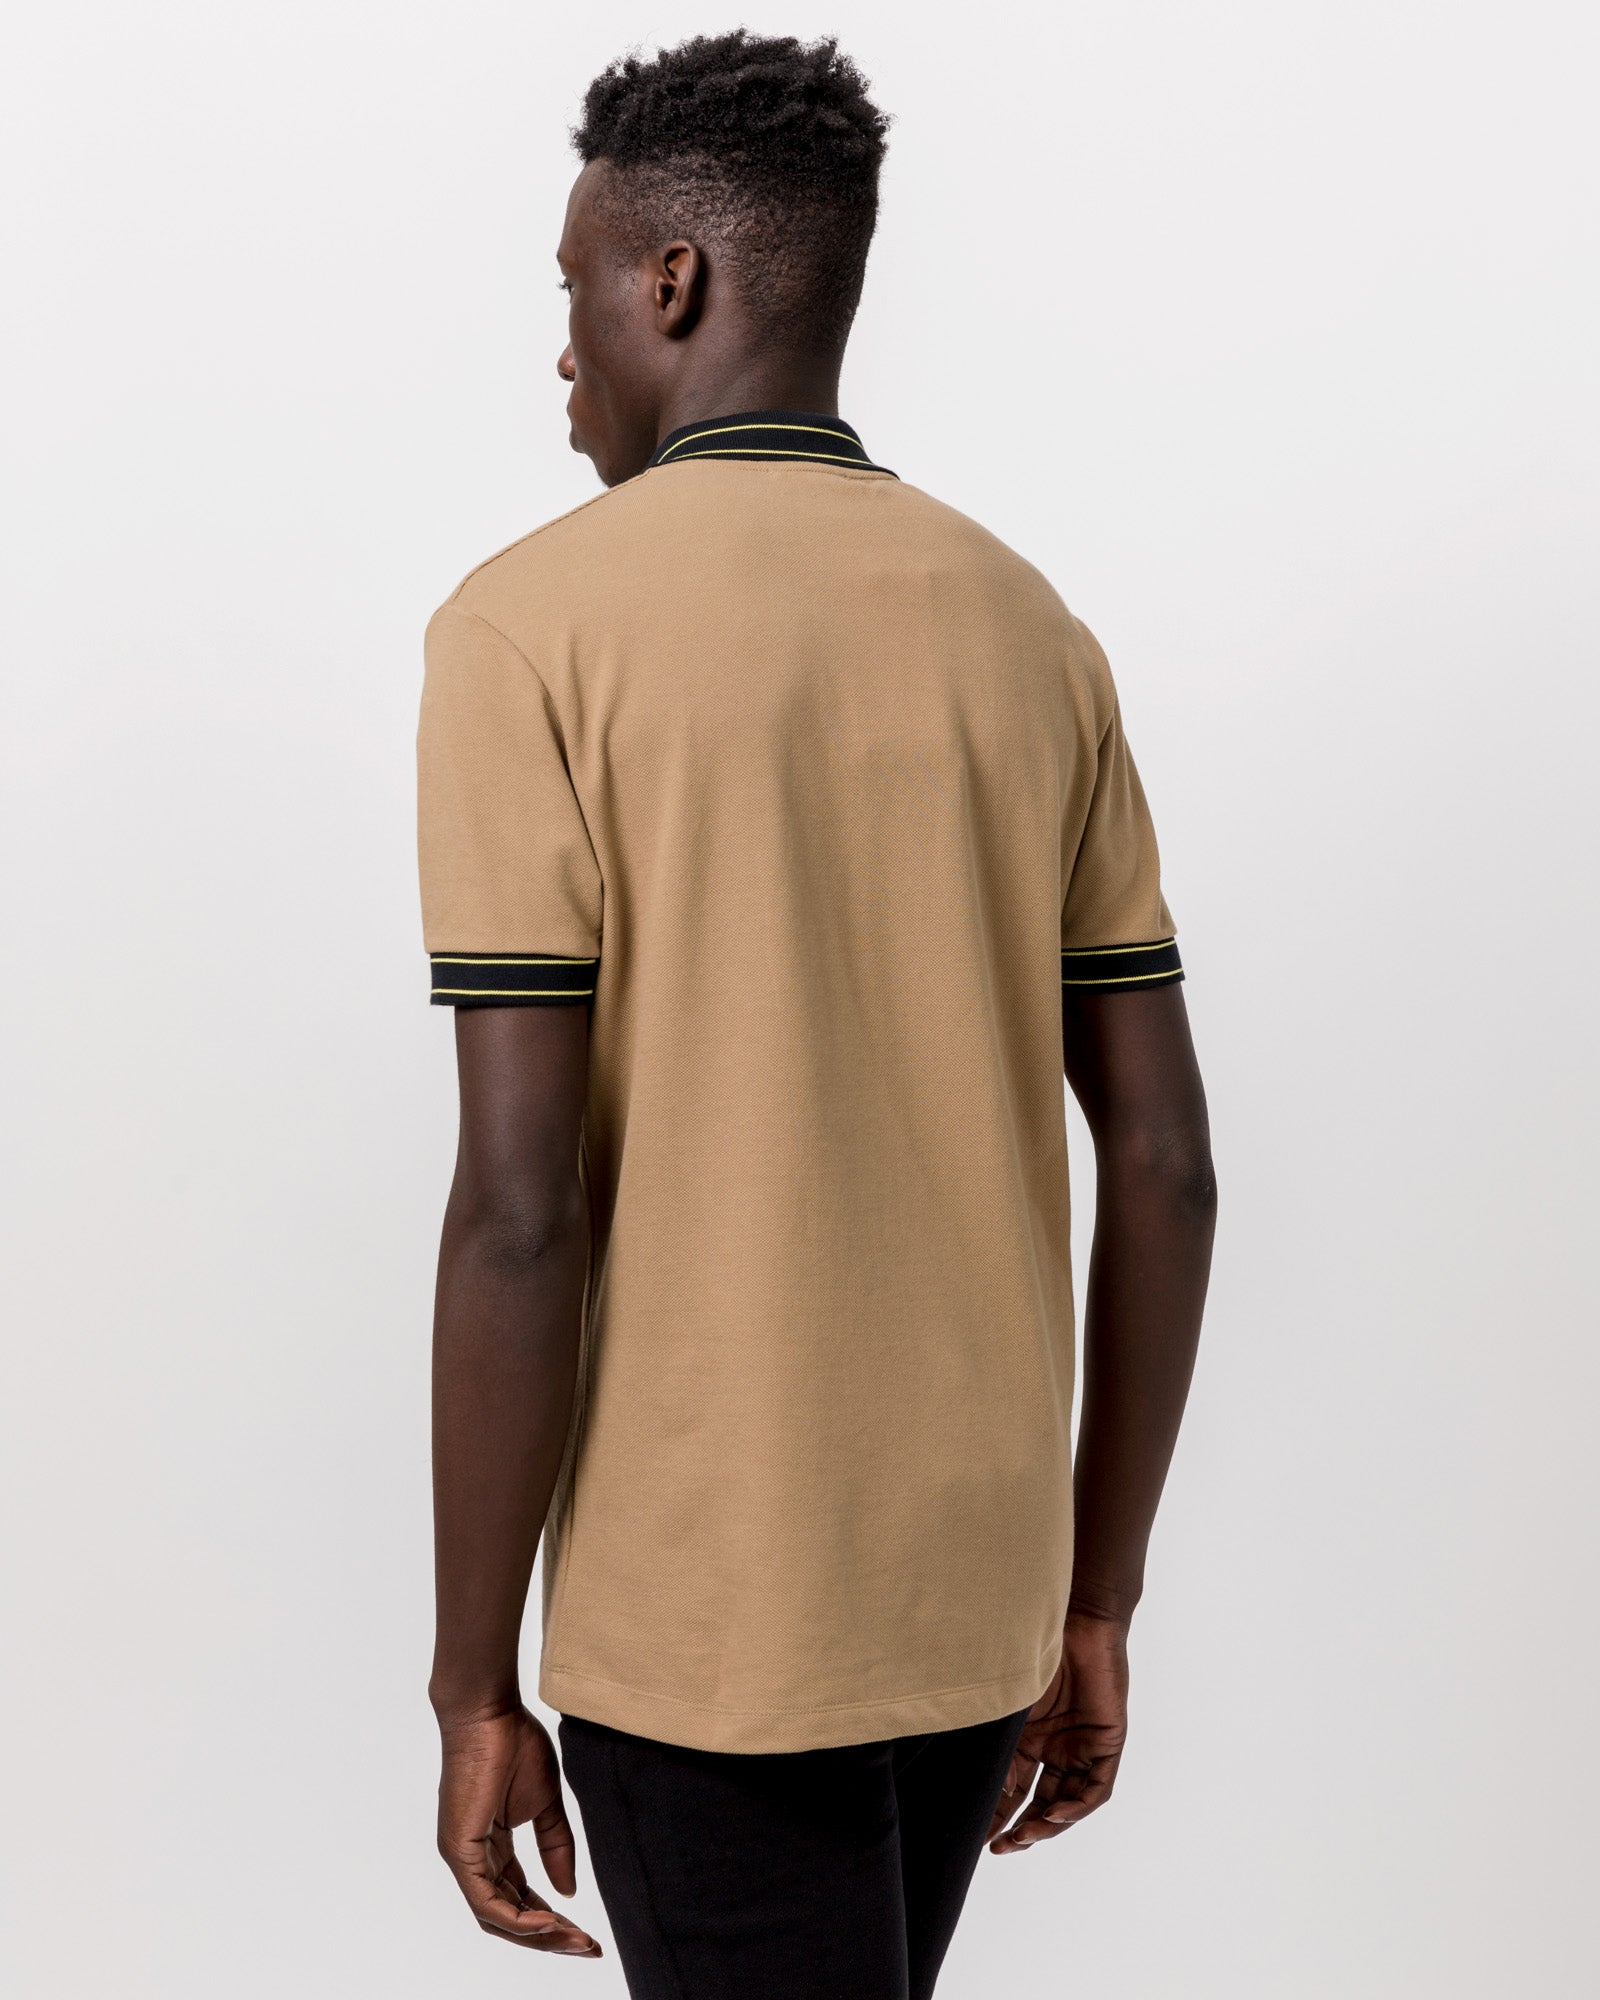 Nolan Polo in Beige & Black